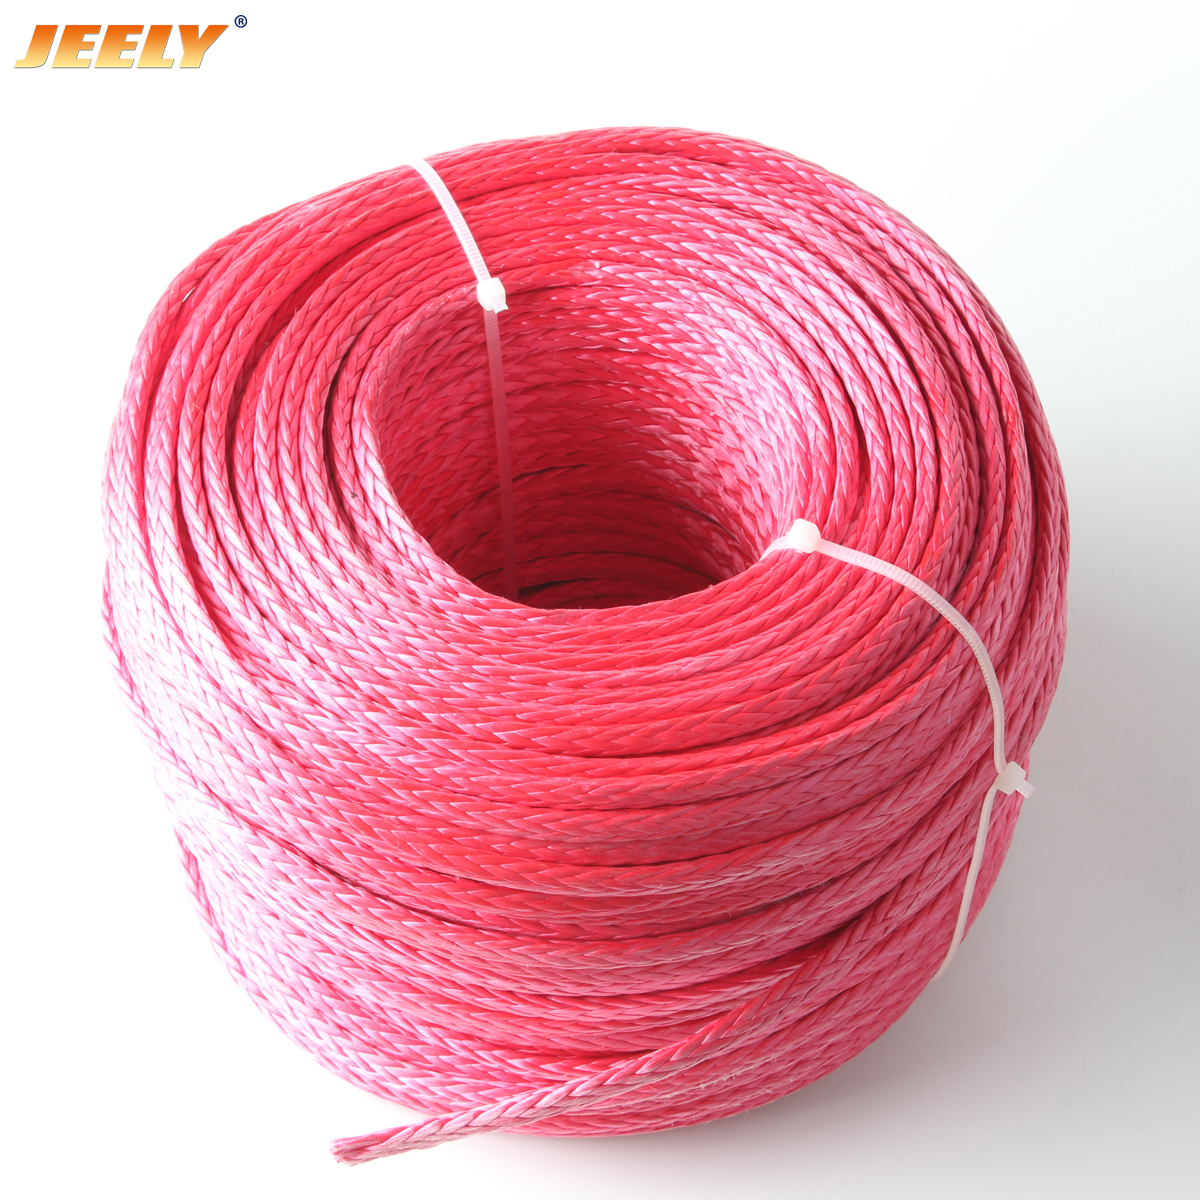 UHMWPE/Spectra synthetic winch rope 12mm